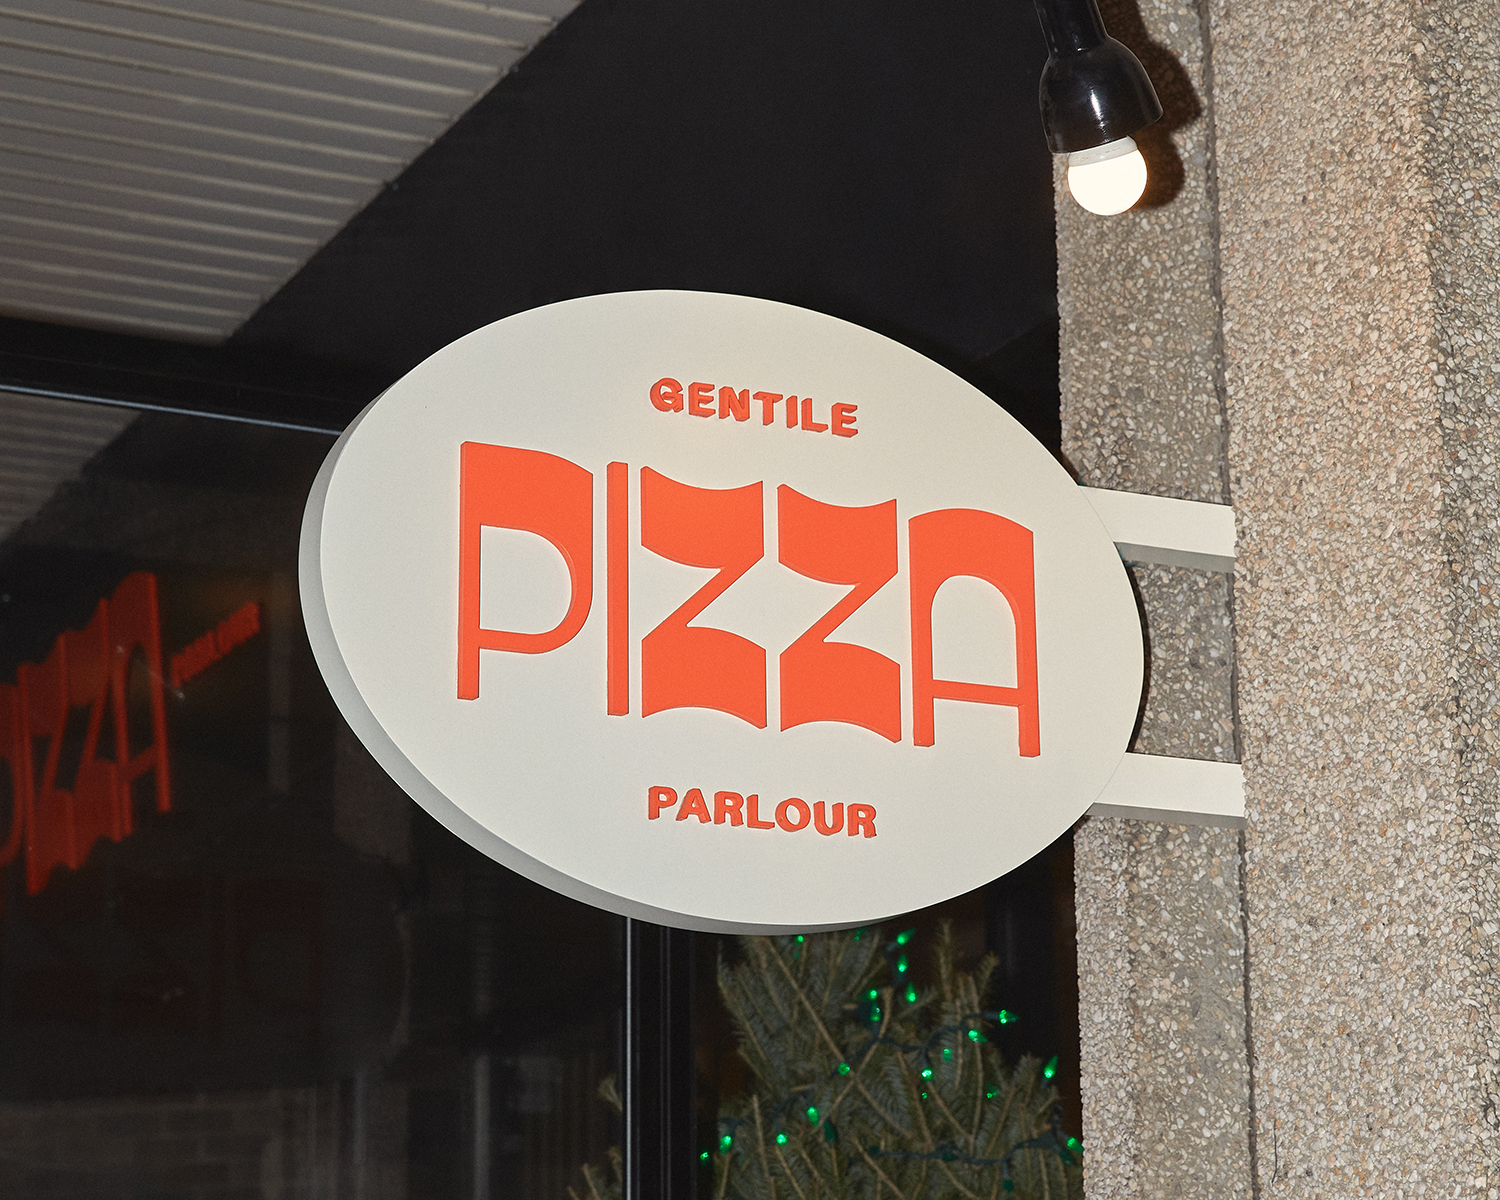 Gentile Pizza Parlour in orange text on white oval sign